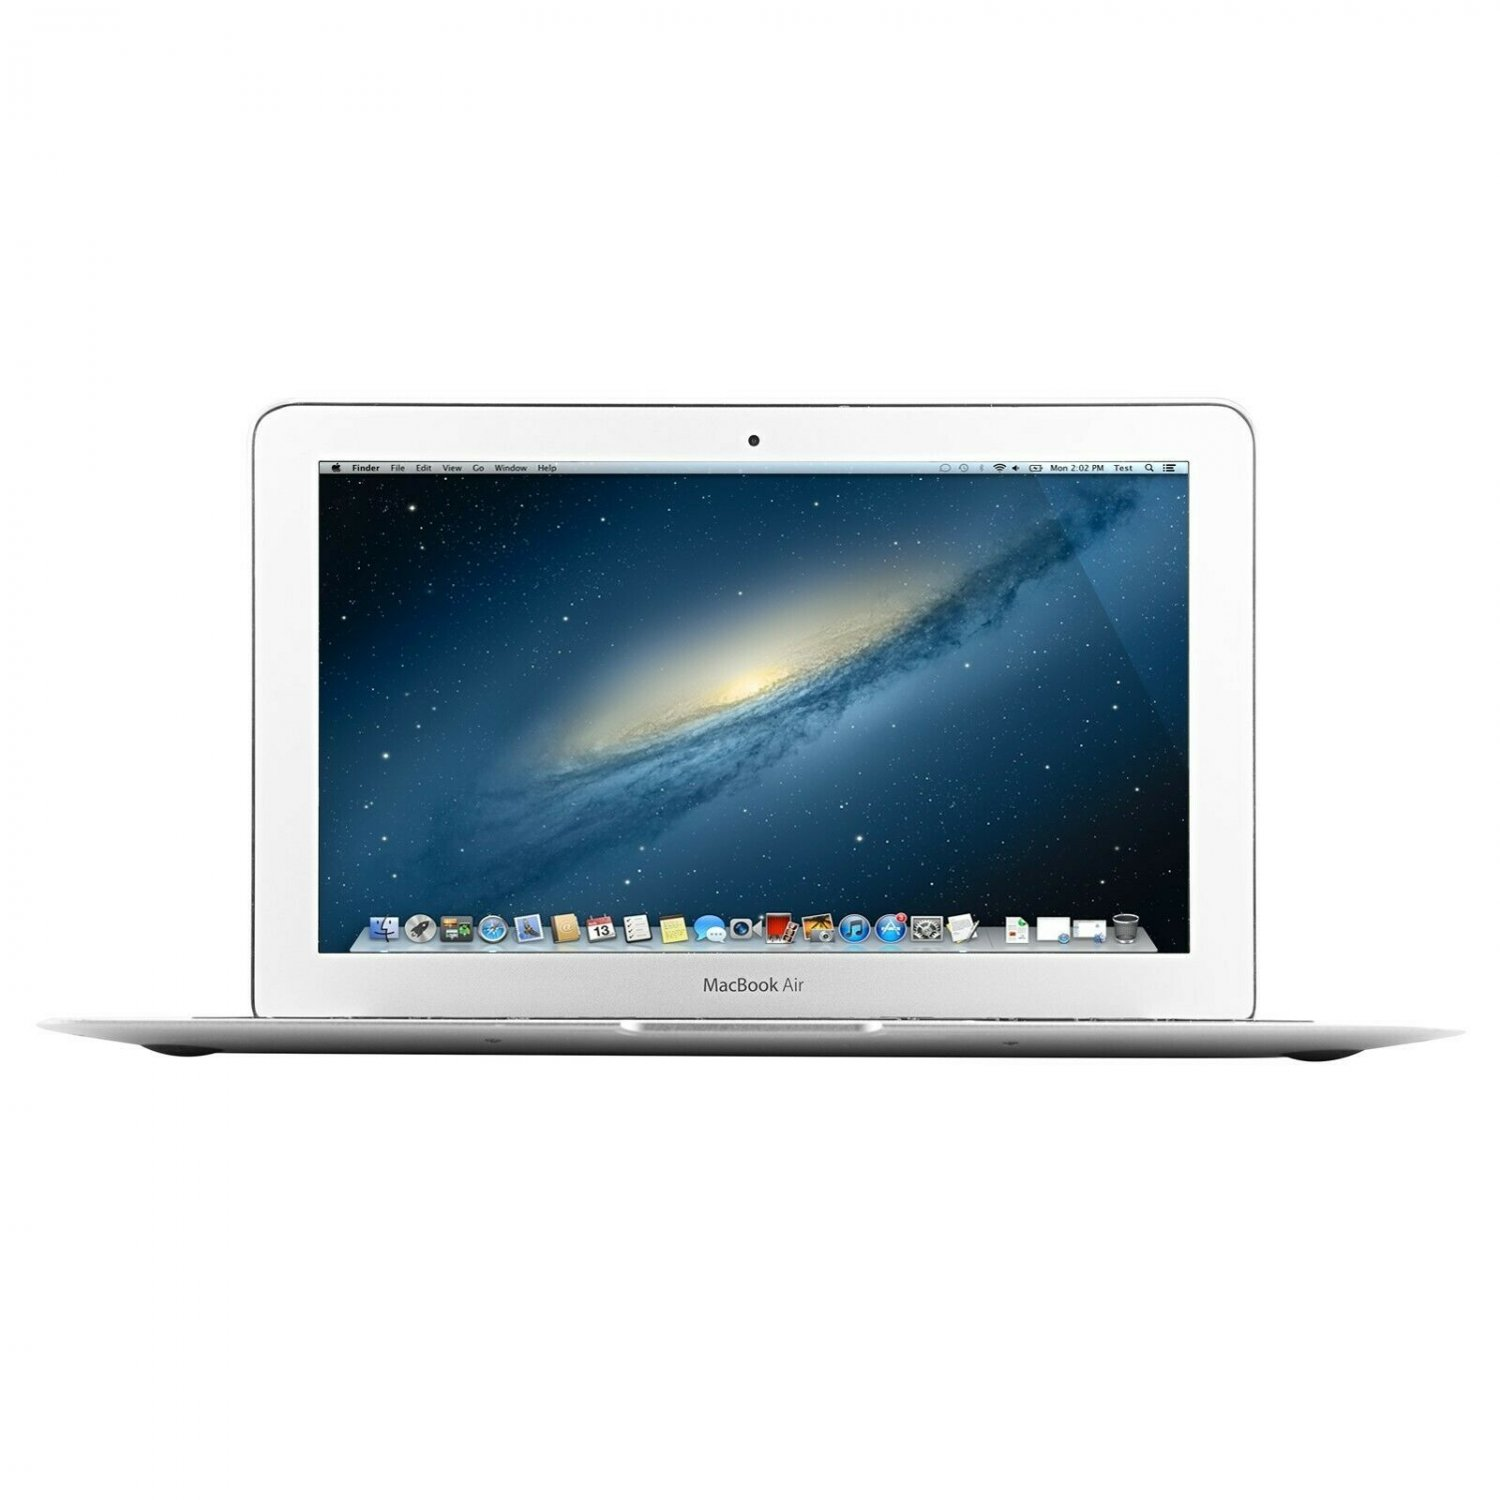 Apple MacBook Air 11.6 Inch Laptop MD711LL/A (Certified Refurbished)1